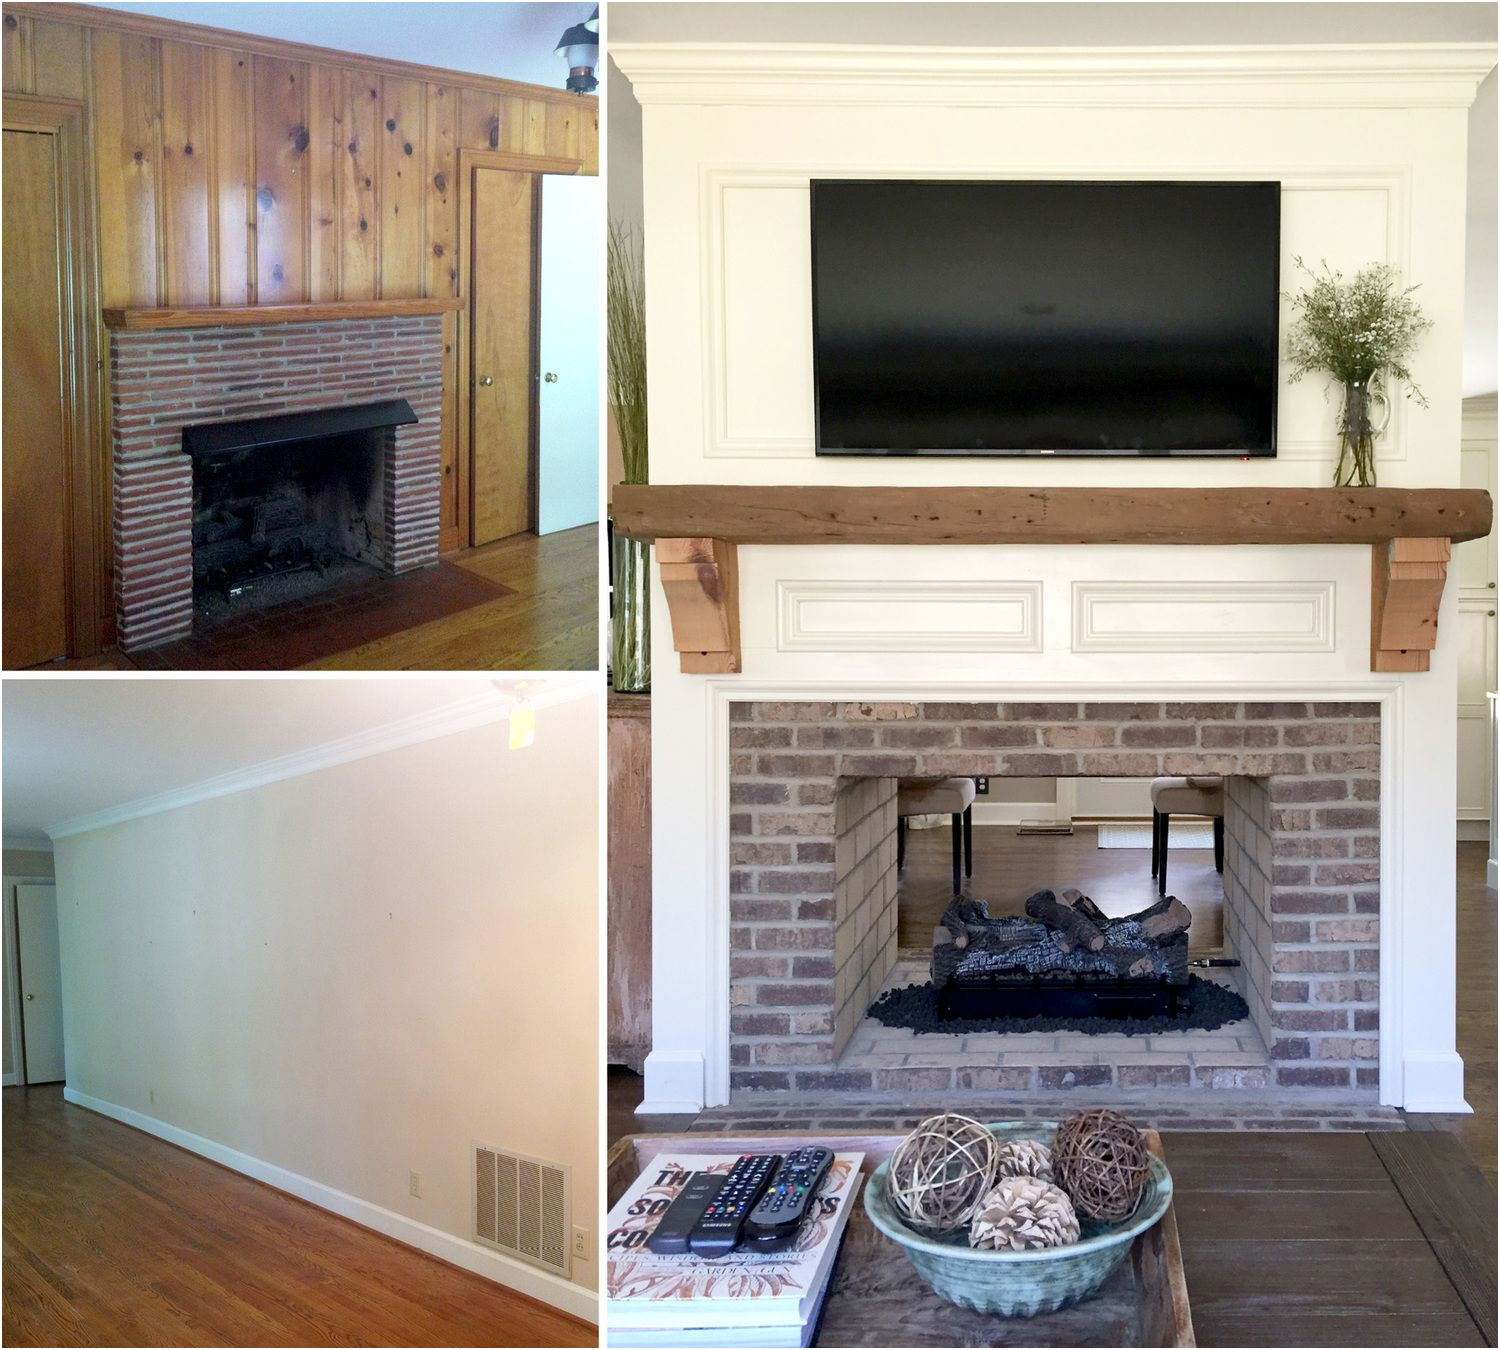 Remodeling Fireplace Brick Best Of Fireplace Renovation Converting A Single Sided Fireplace to